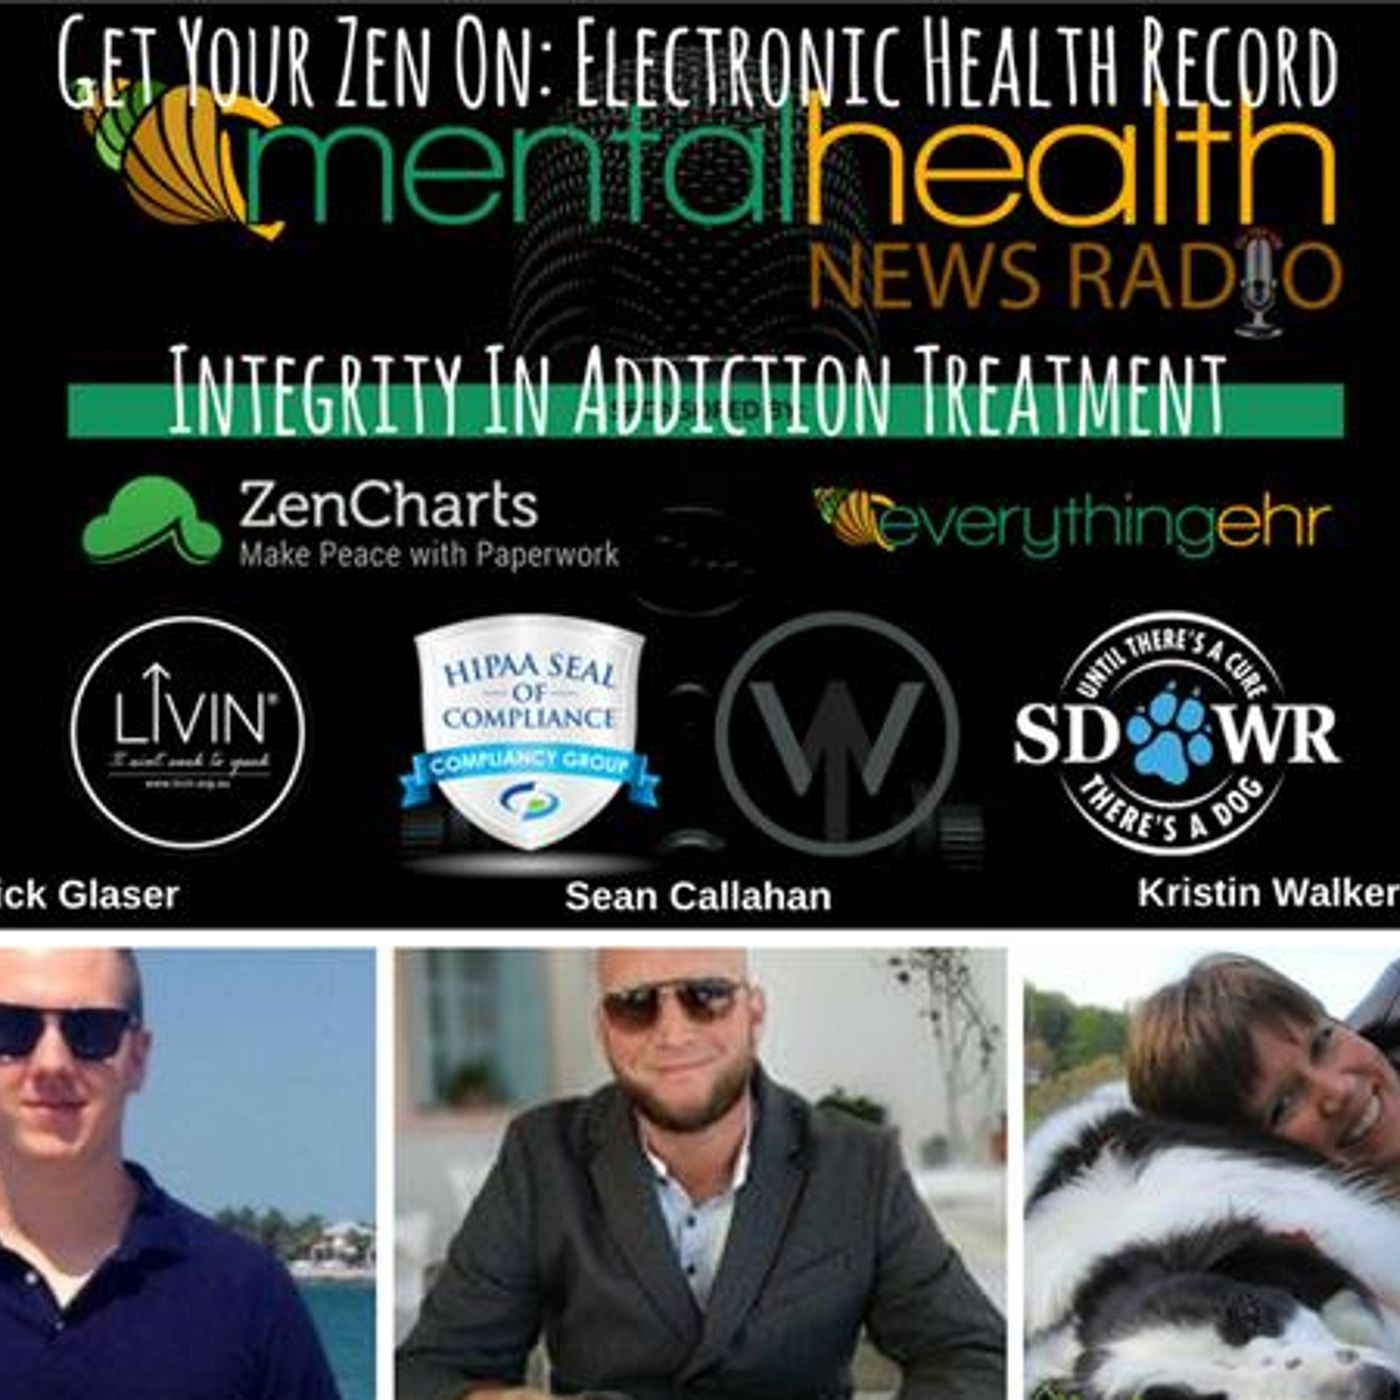 Mental Health News Radio - Get Your Zen On: Electronic Health Record Integrity In Addiction Treatment